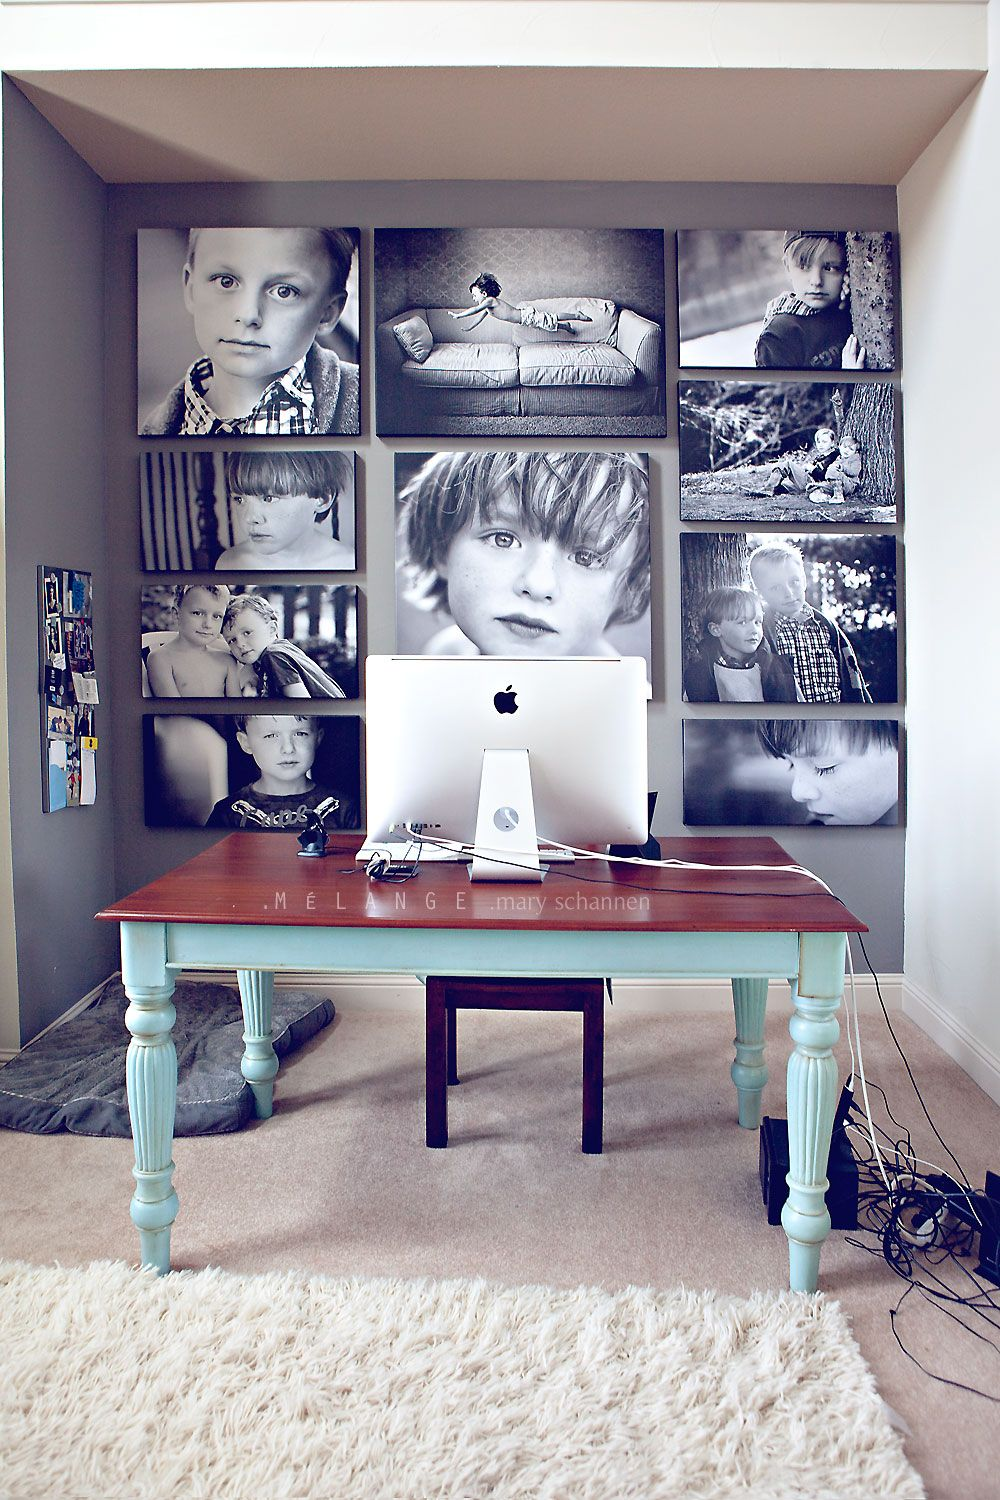 Lovely office with a beautiful photo canvas wall. From photographer Mary Schannen. via http://melangephotographyblog.com/from-music-room-to-office/